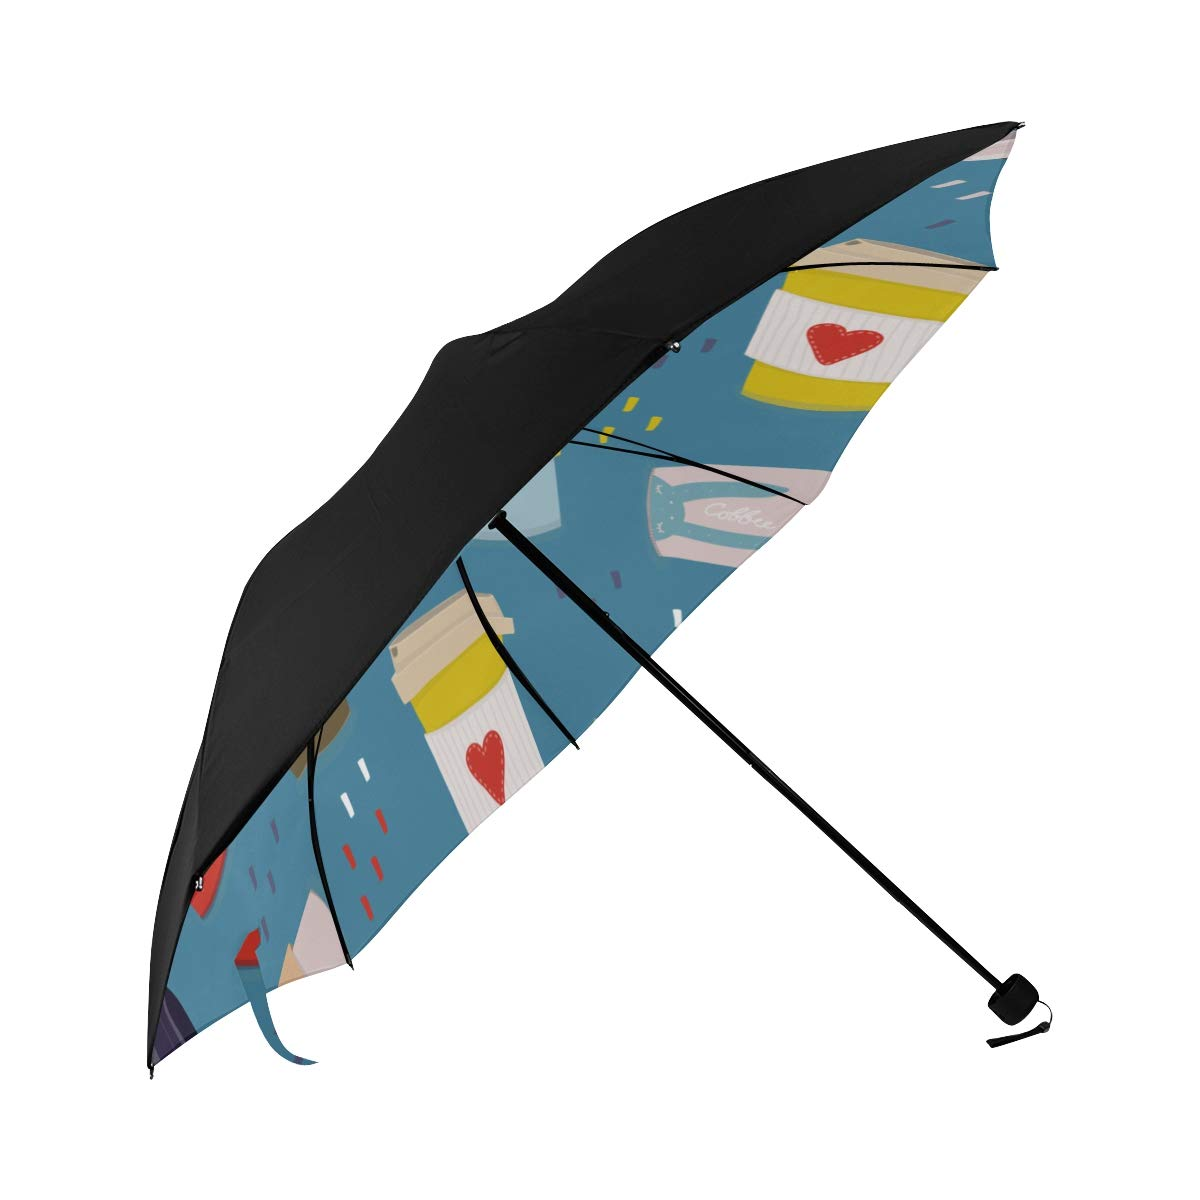 Water Glass Container Daily Necessities Compact Travel Umbrella Sun Parasol Anti Uv Foldable Umbrellas(underside Printing) As Best Present For Women Sun Uv Protection